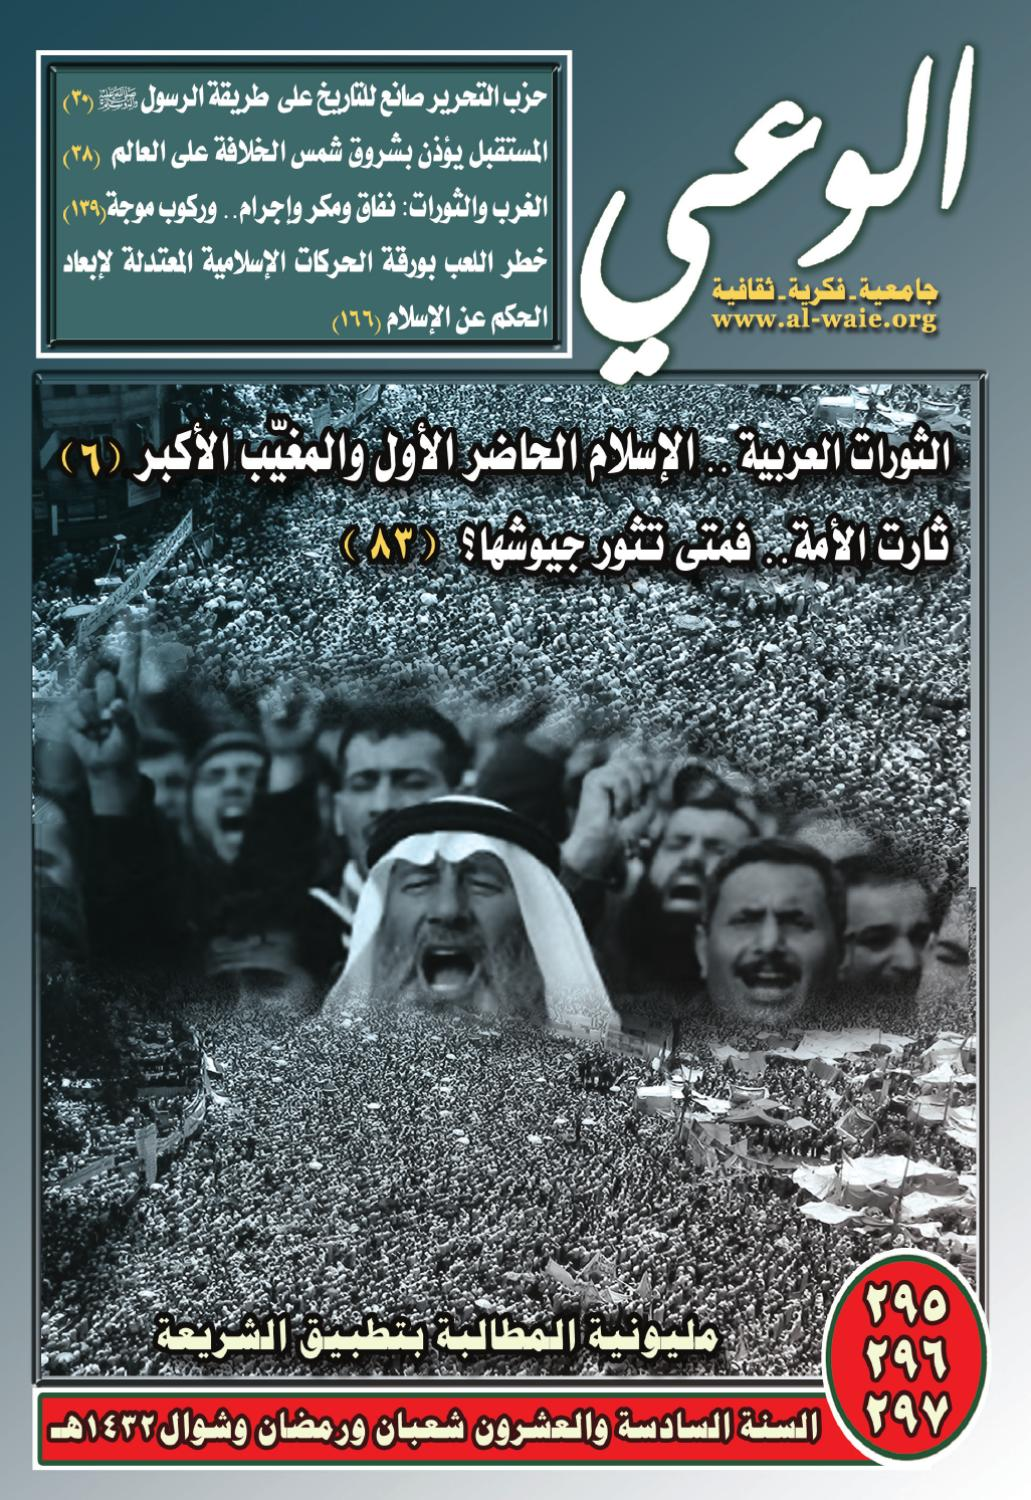 fc3c0099c al waie by assan bassam - issuu